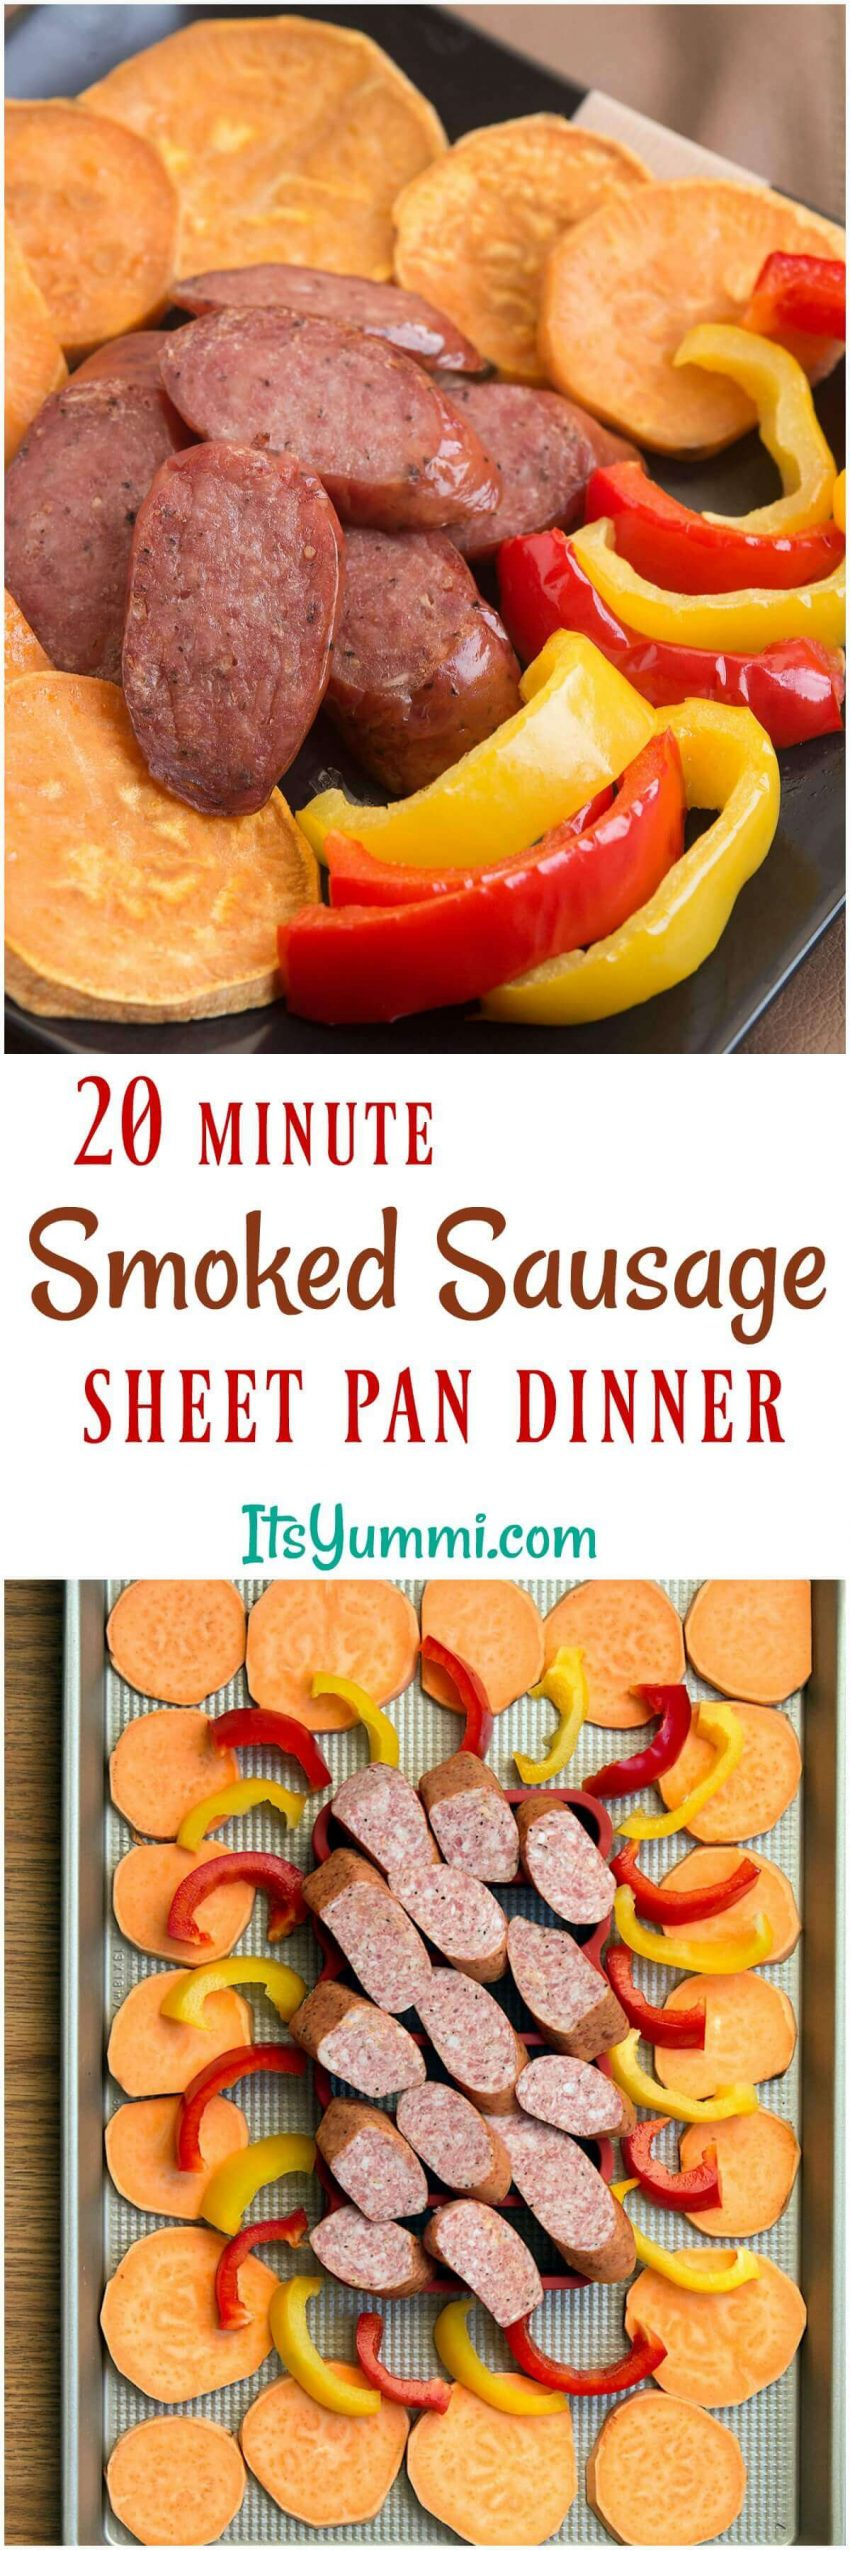 This easy sausage sheet pan dinner is a delicious and quick weeknight meal! Smoked sausage, sweet potatoes, and bell peppers are lightly seasoned, then roasted for20 minutes in this one pan dinner recipe.